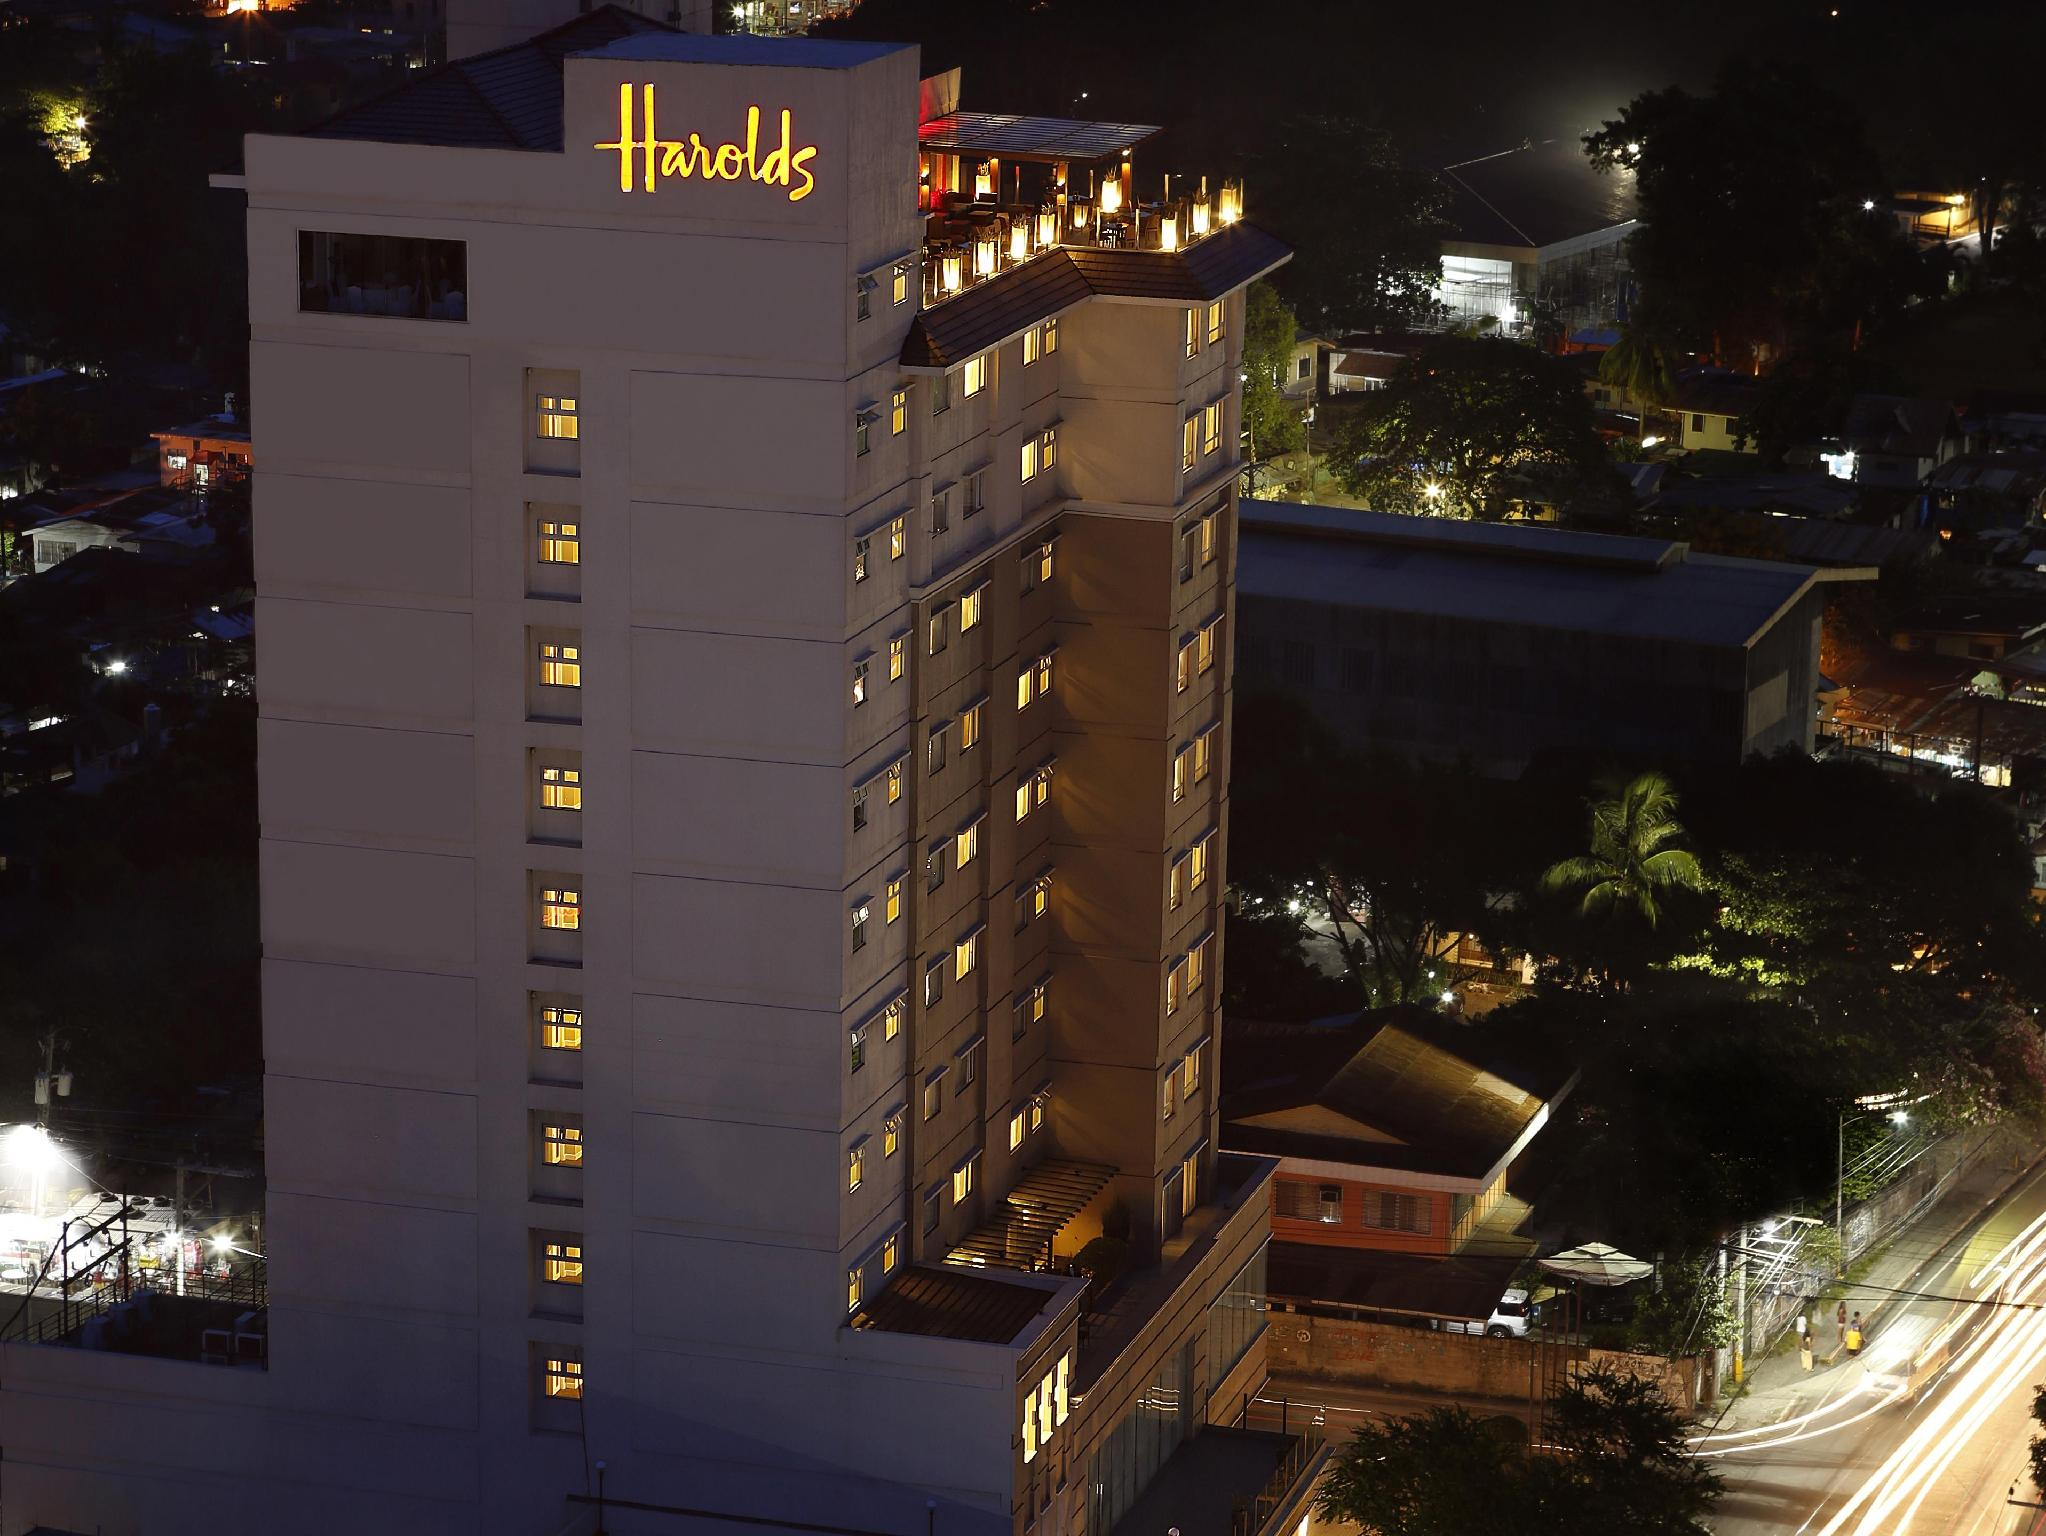 Harolds Hotel Cebu City - Exterior do Hotel